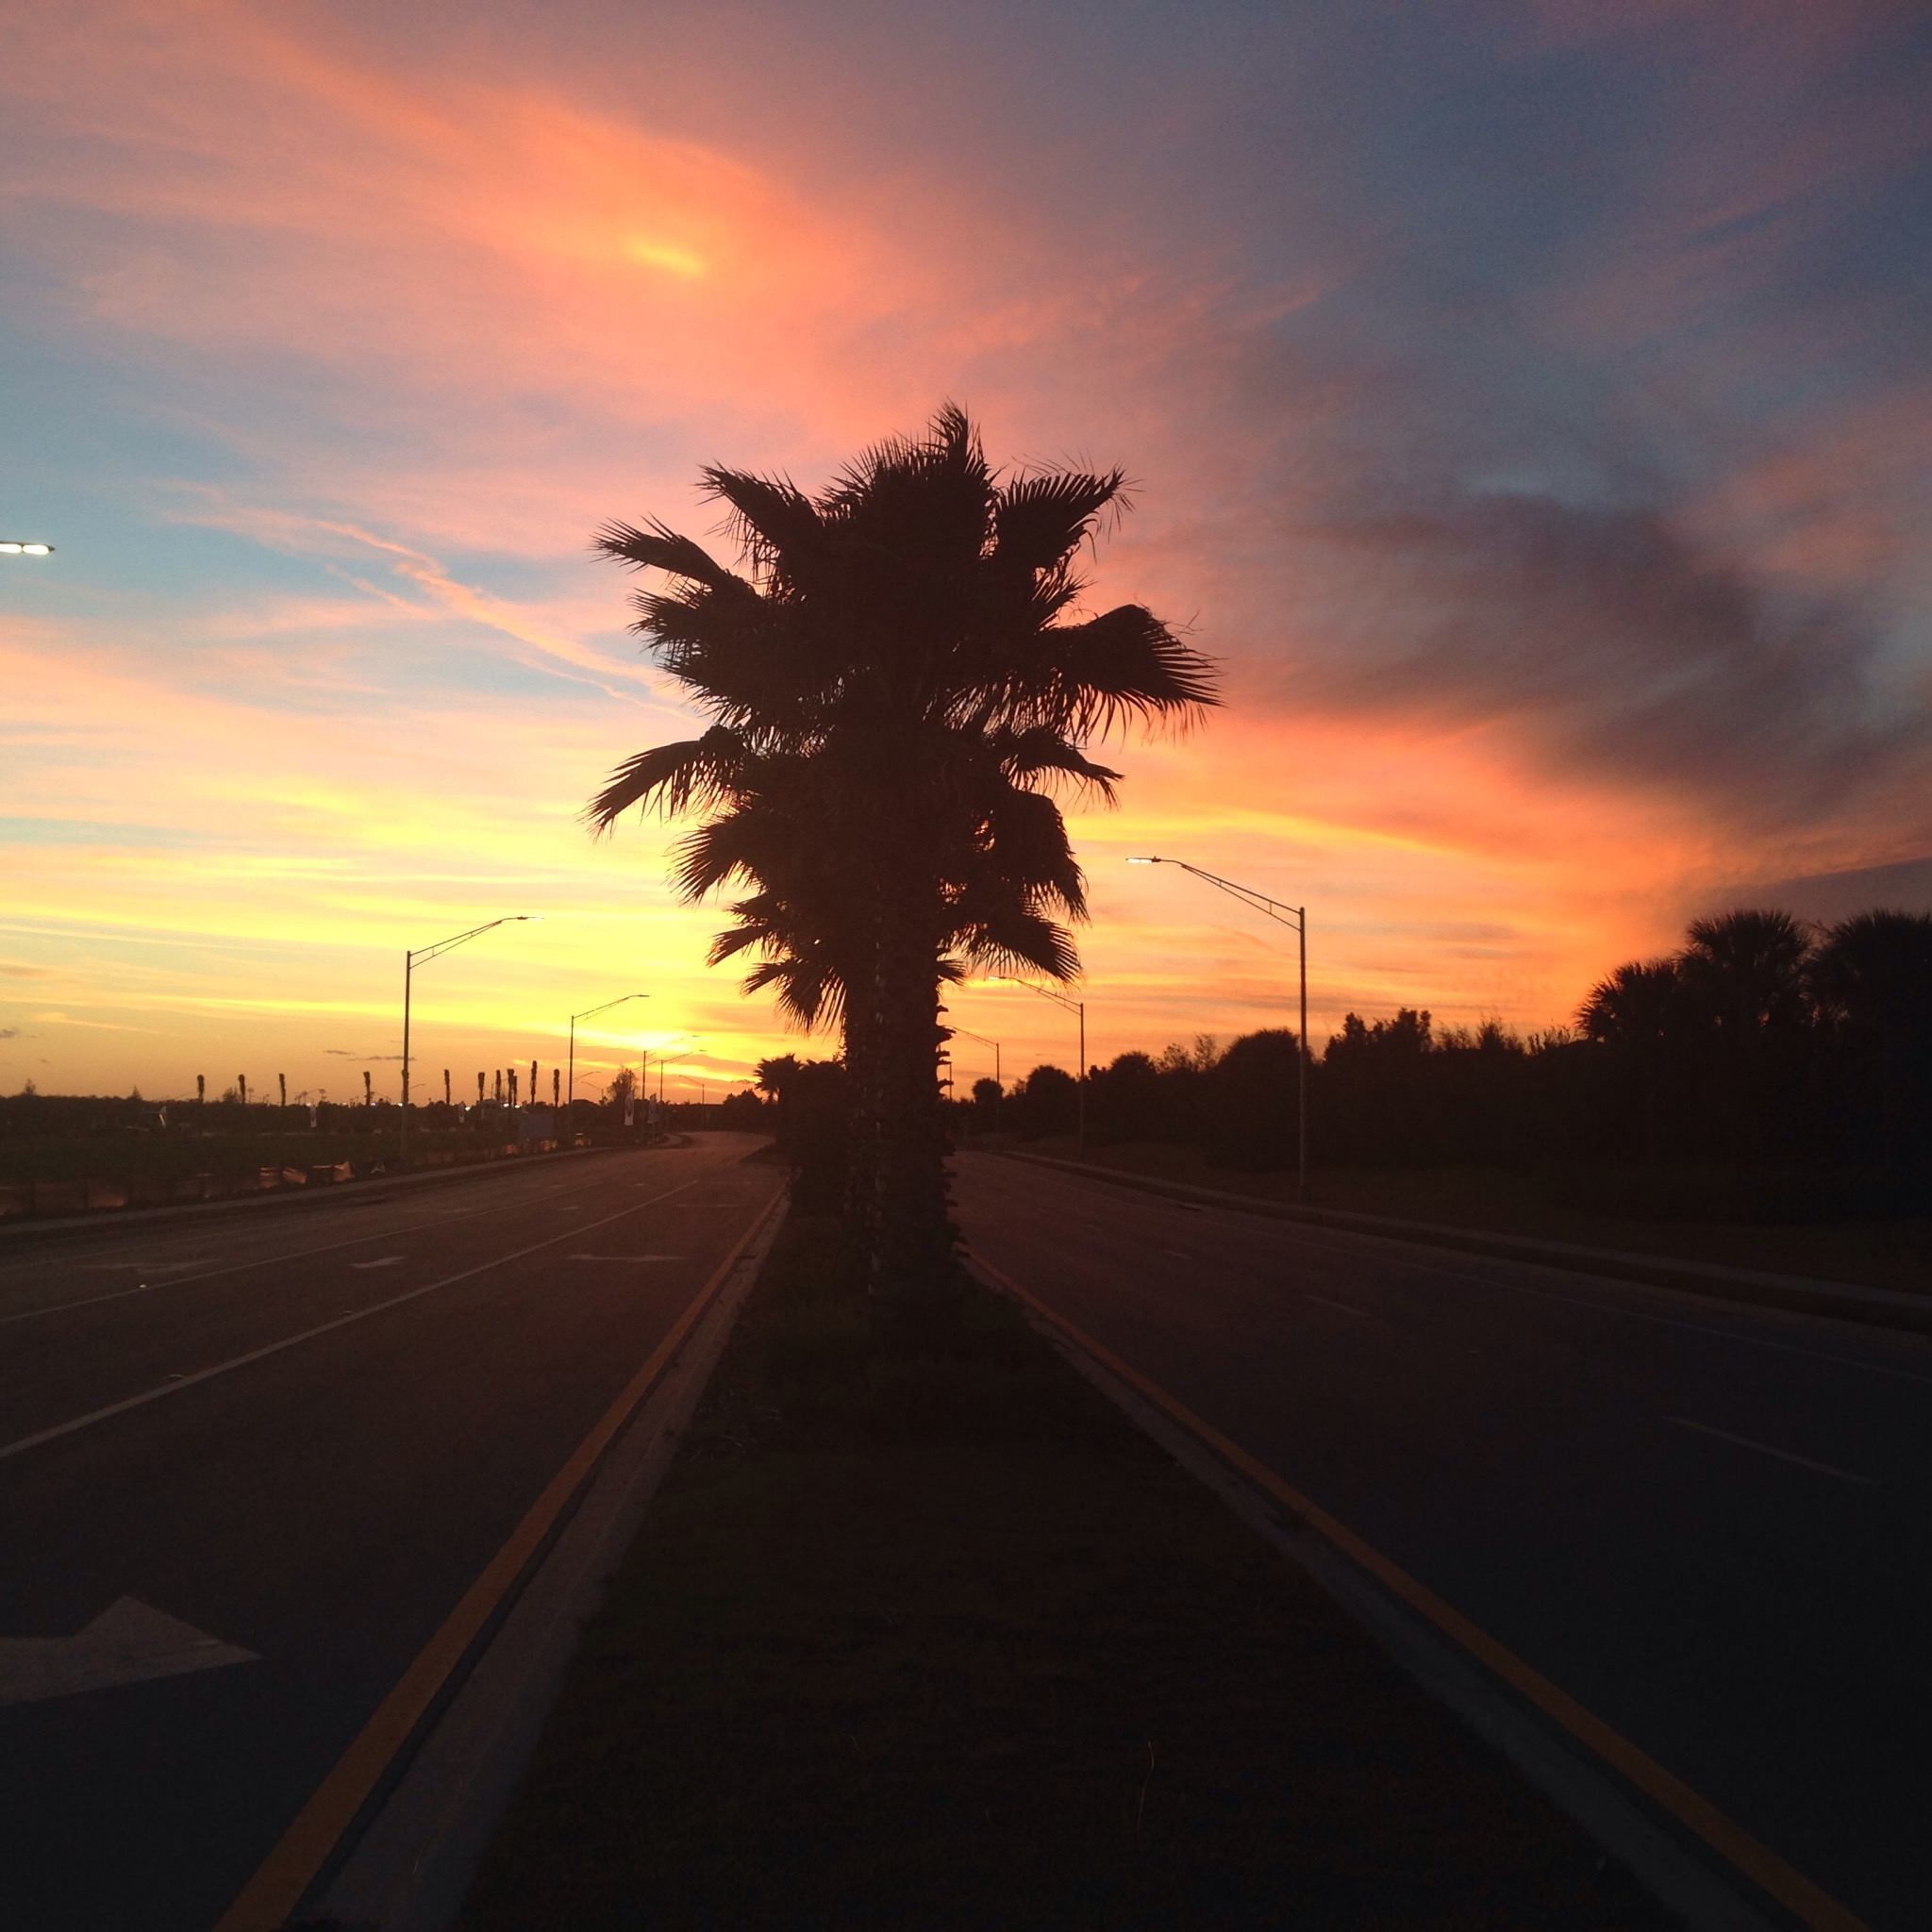 florida sunset, sarasota, florida, winter, sunset, palm trees